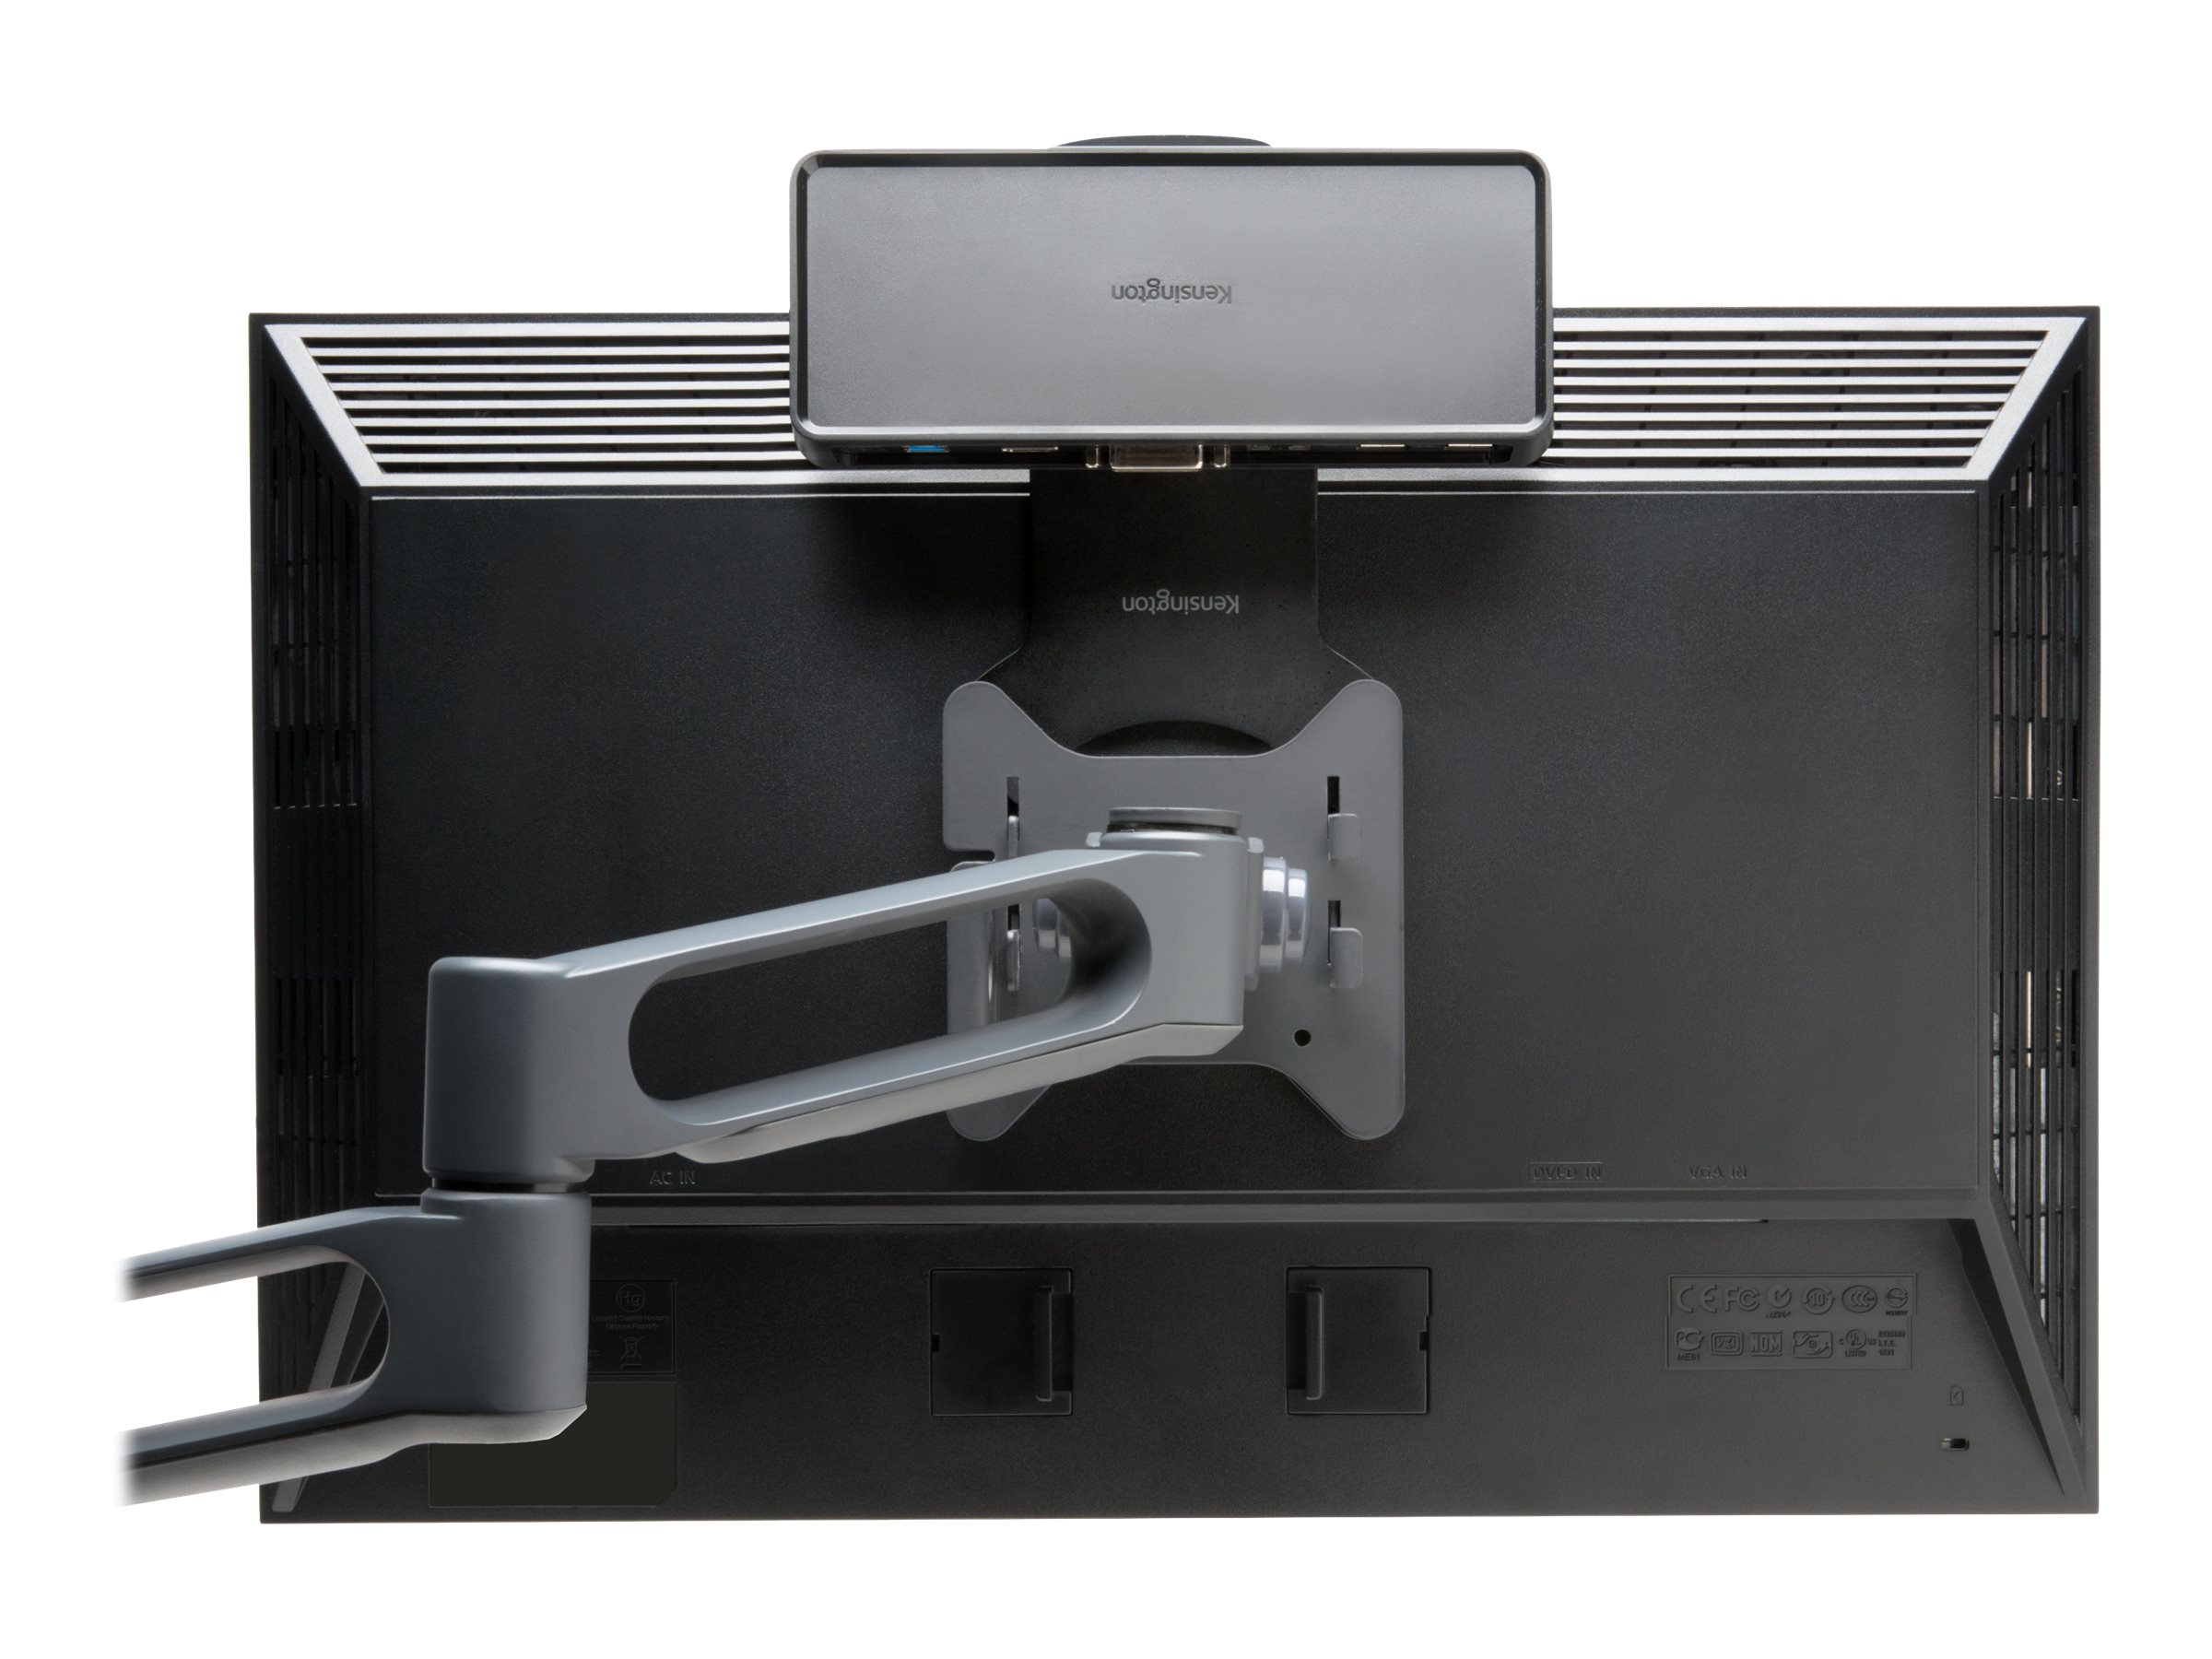 Kensington SD3600 Universal USB 3.0 Docking Station, K33991WW